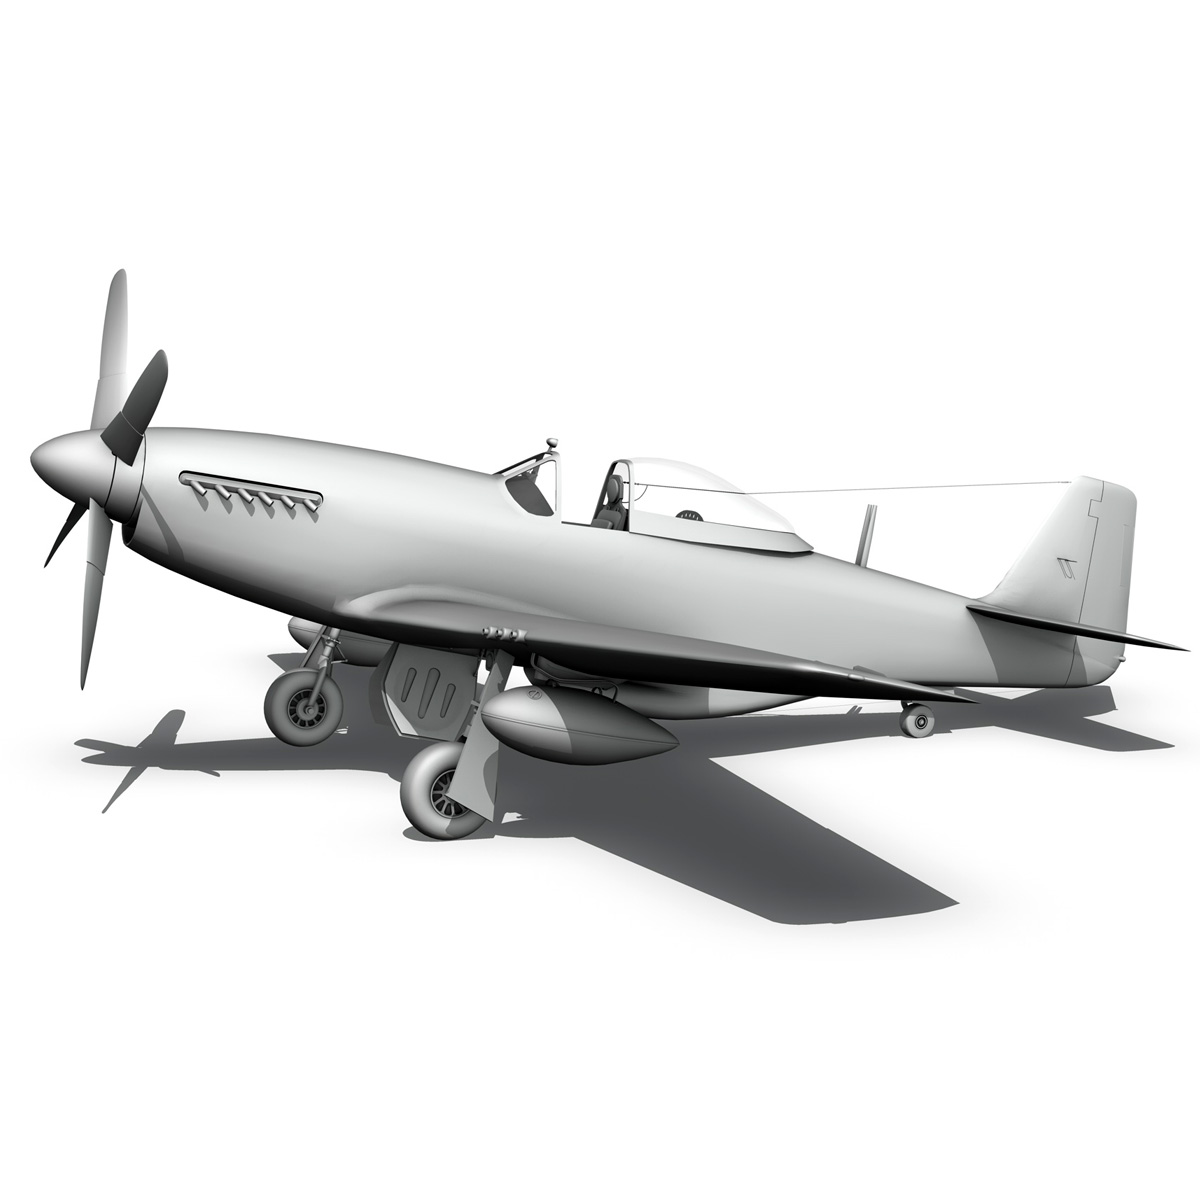 north american p-51d – the hun hunter / texas 3d model fbx c4d lwo obj 282544